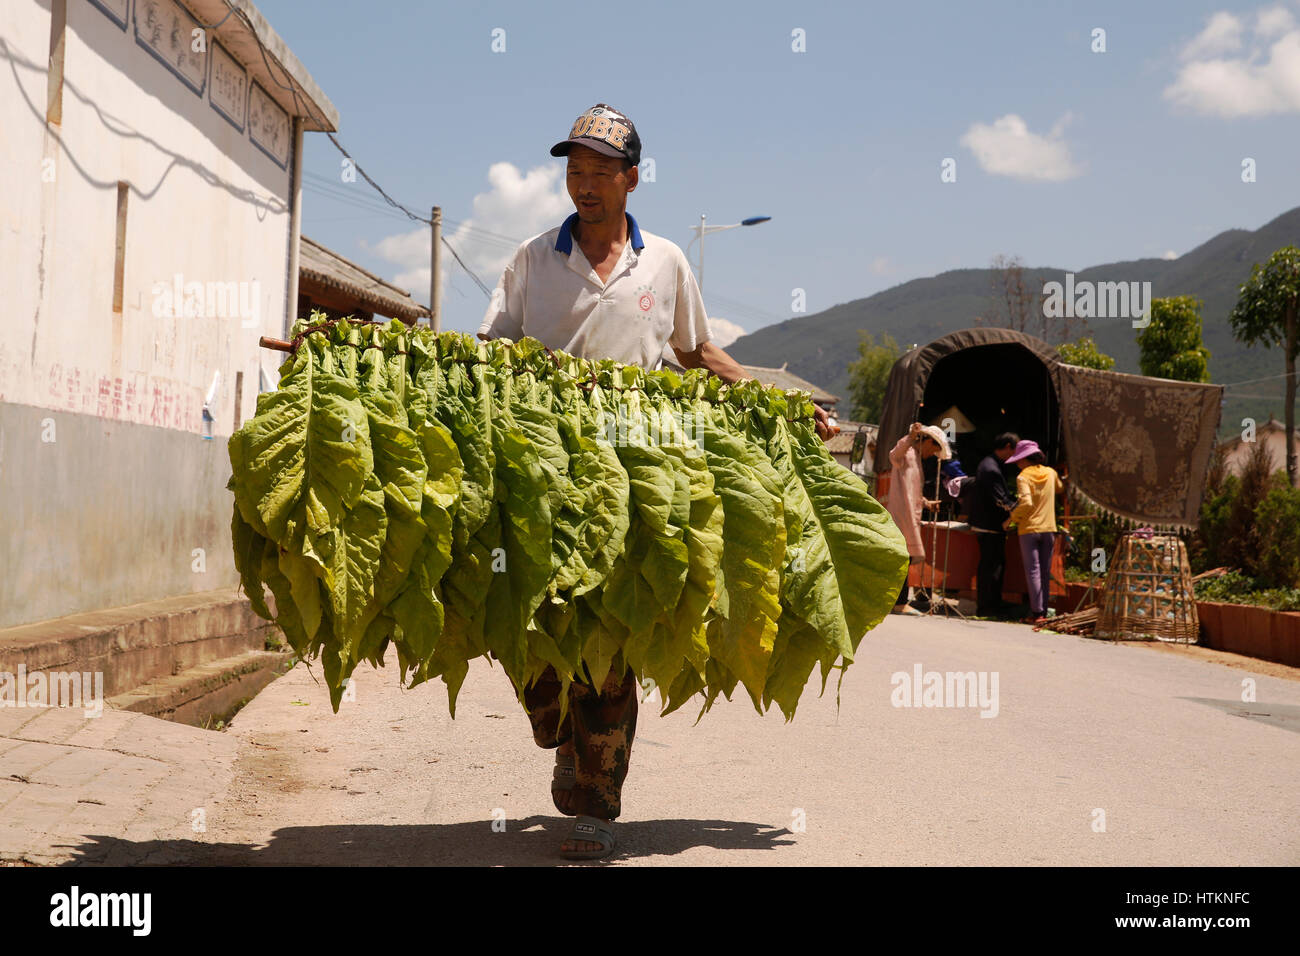 A man carries rods hug with fresh tobacco leaves to be dried during the tobacco harvest at Dion Tou village, near - Stock Image